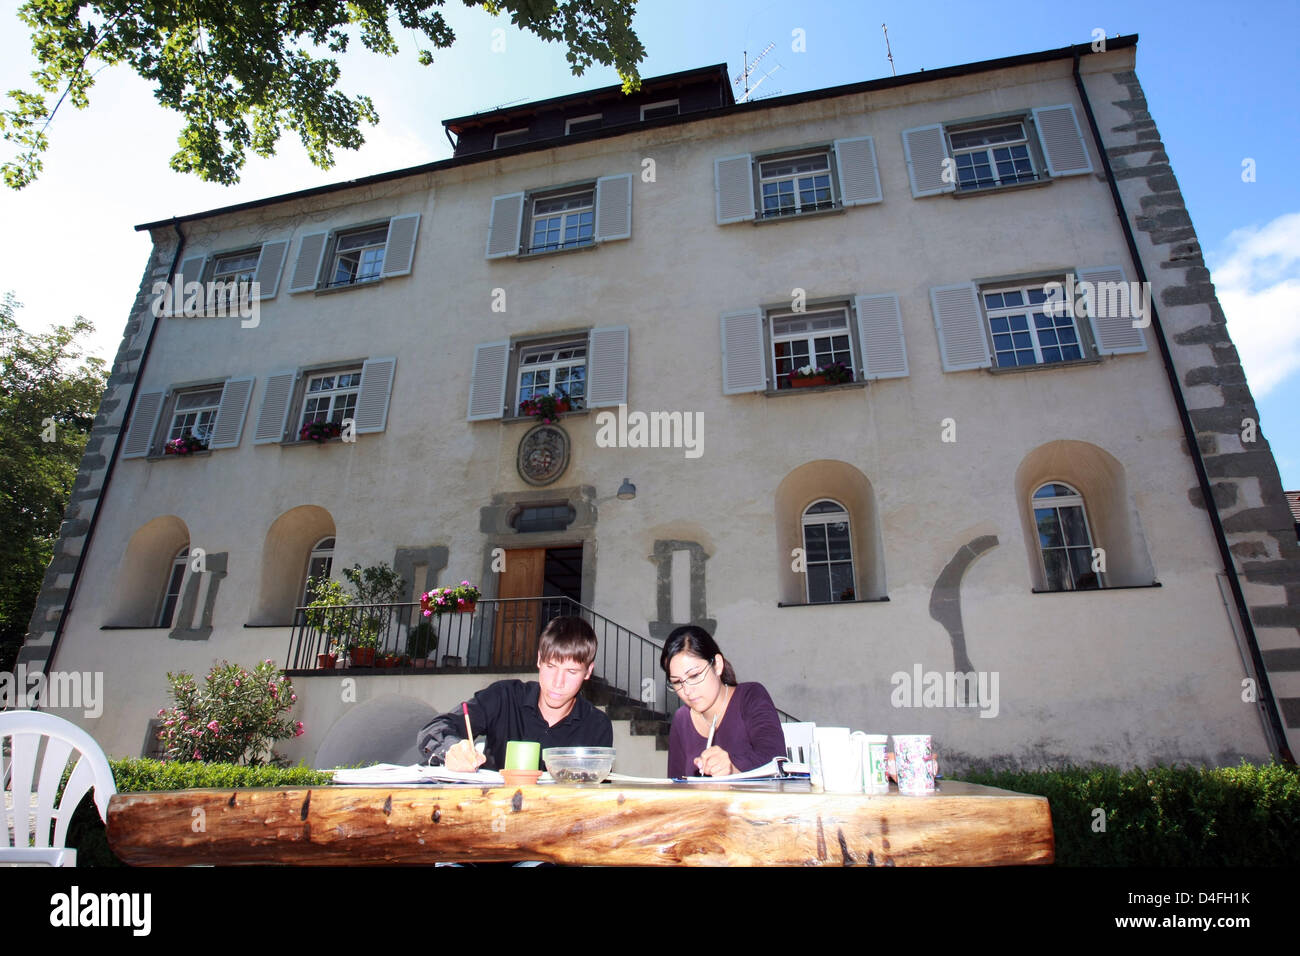 Marie Regel and Bjoern Weber study at the protestant boarding school at Castle Gaienhofen, Germany, 09 July 2008. - Stock Image